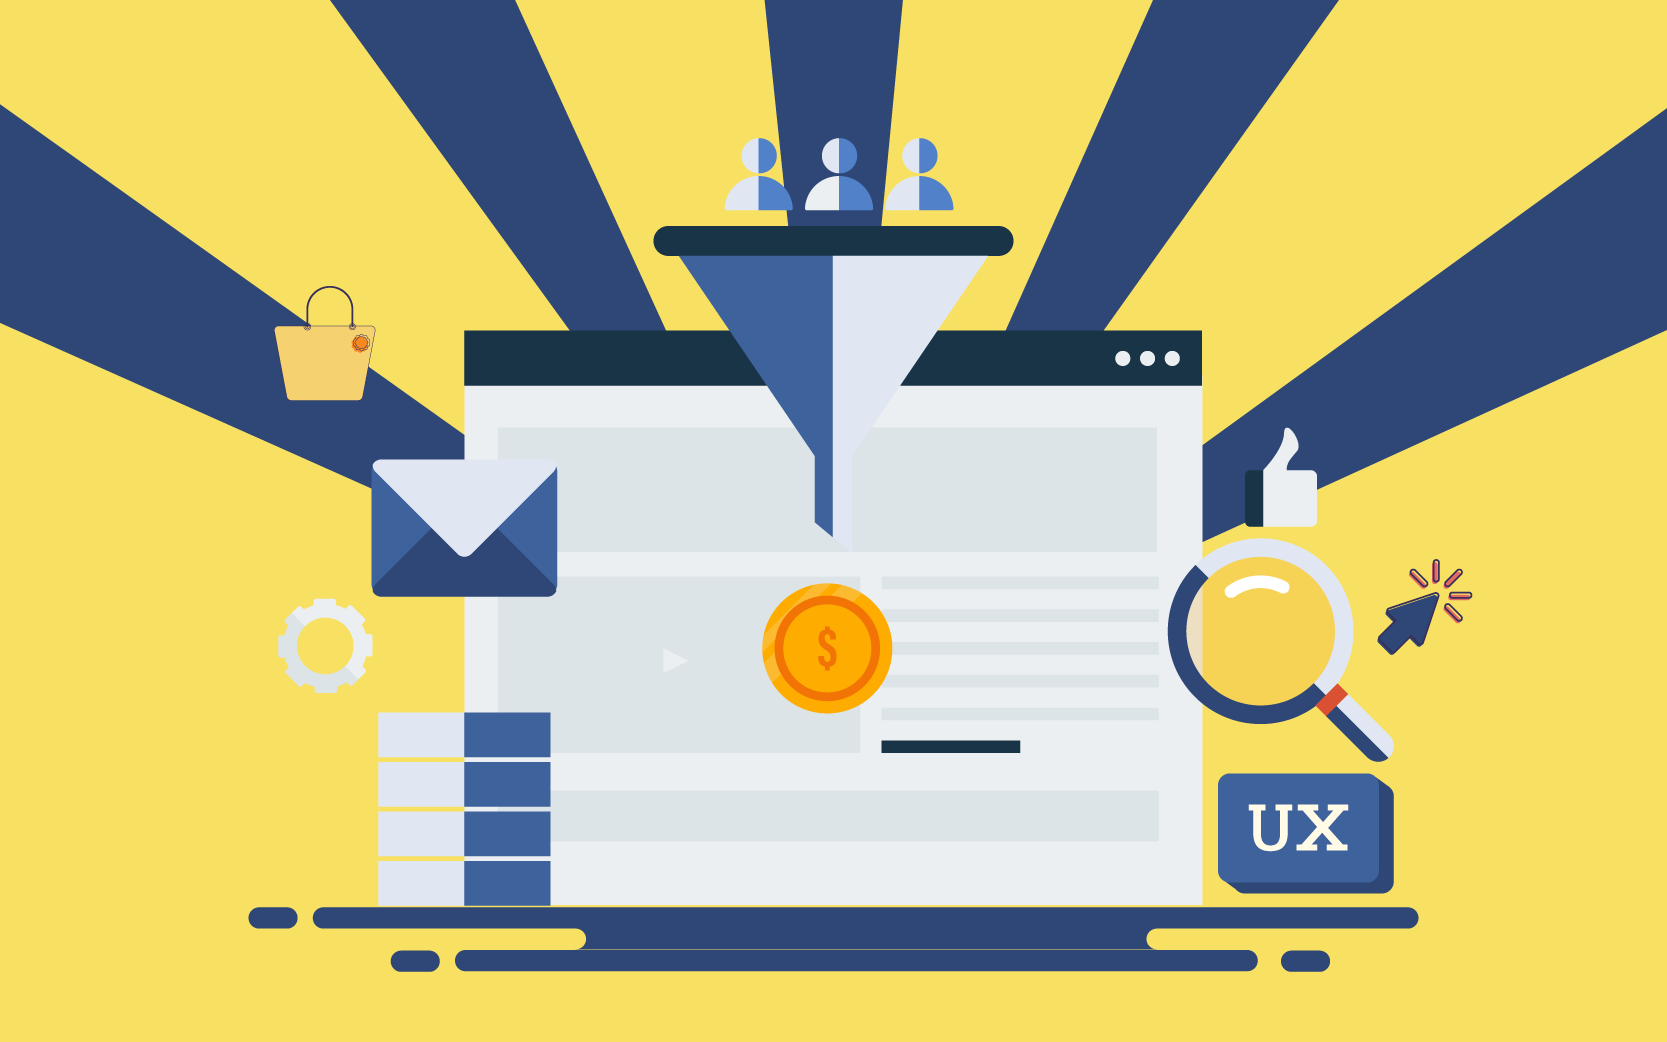 a conversion funnel with UX elements